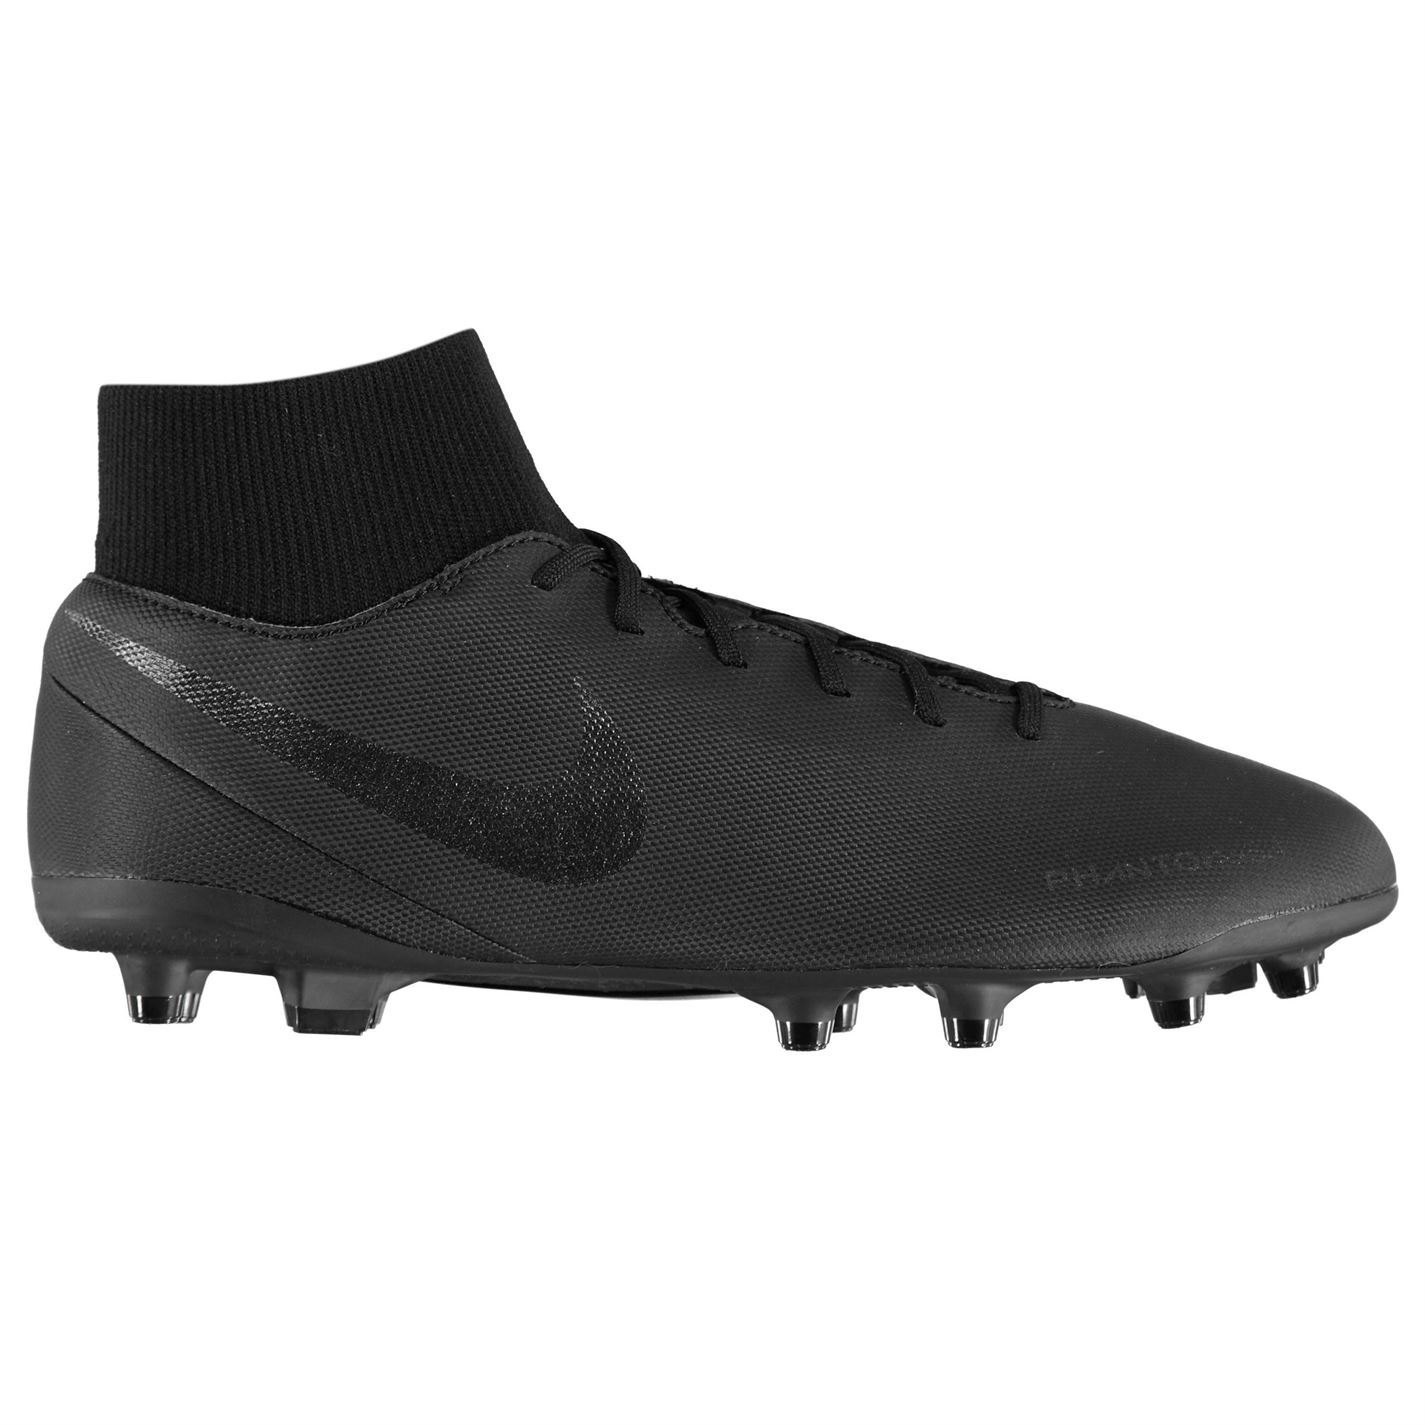 factory price ca1ef 9fdc7 Details about Nike Phantom Vision Club DF Firm Ground Football Boots Mens  Soccer Shoes Cleats